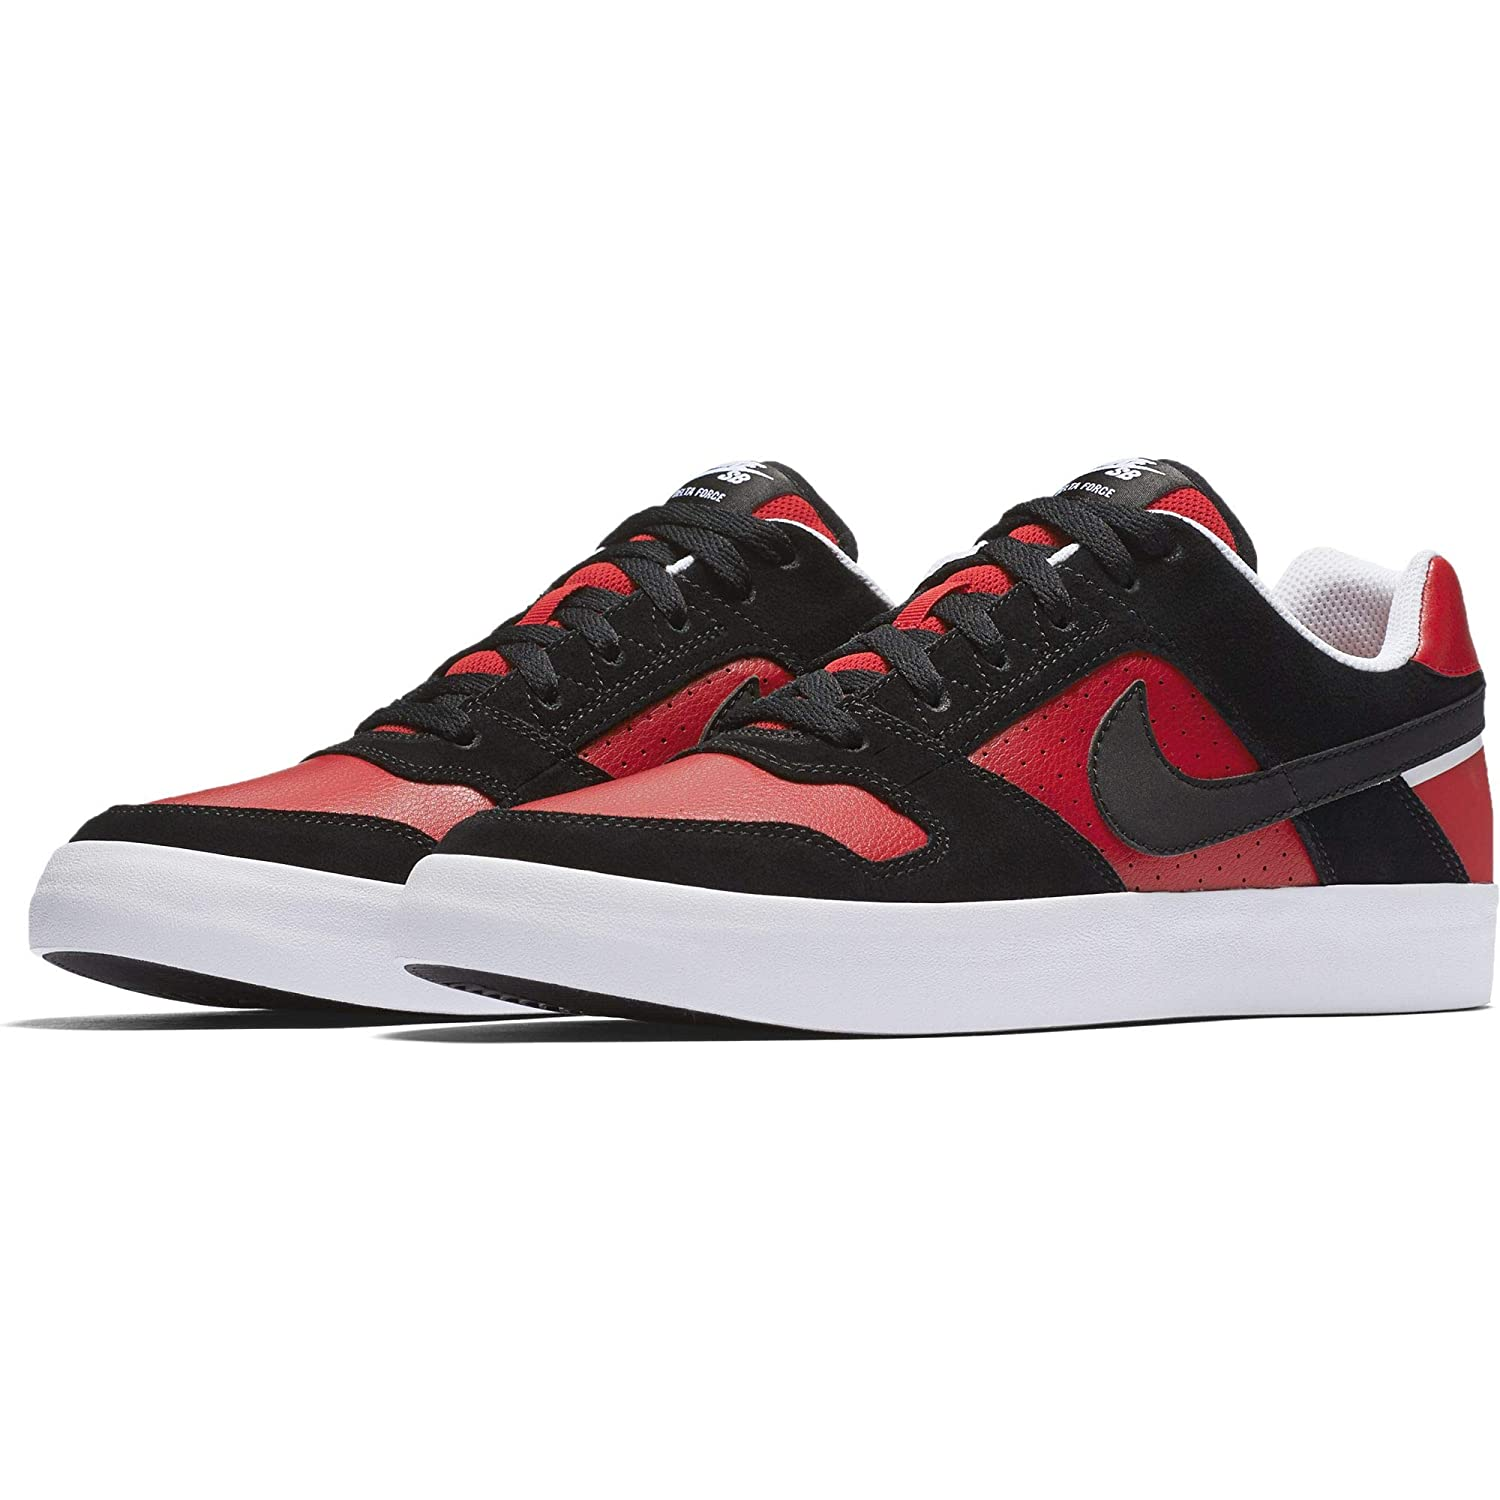 6673f84b4e Nike Men's Sb Delta Force Vulc Blk-University Red-Wht Skateboarding Shoes-6  UK/India(39 EU)(6.5 US) (942237-006): Buy Online at Low Prices in India ...